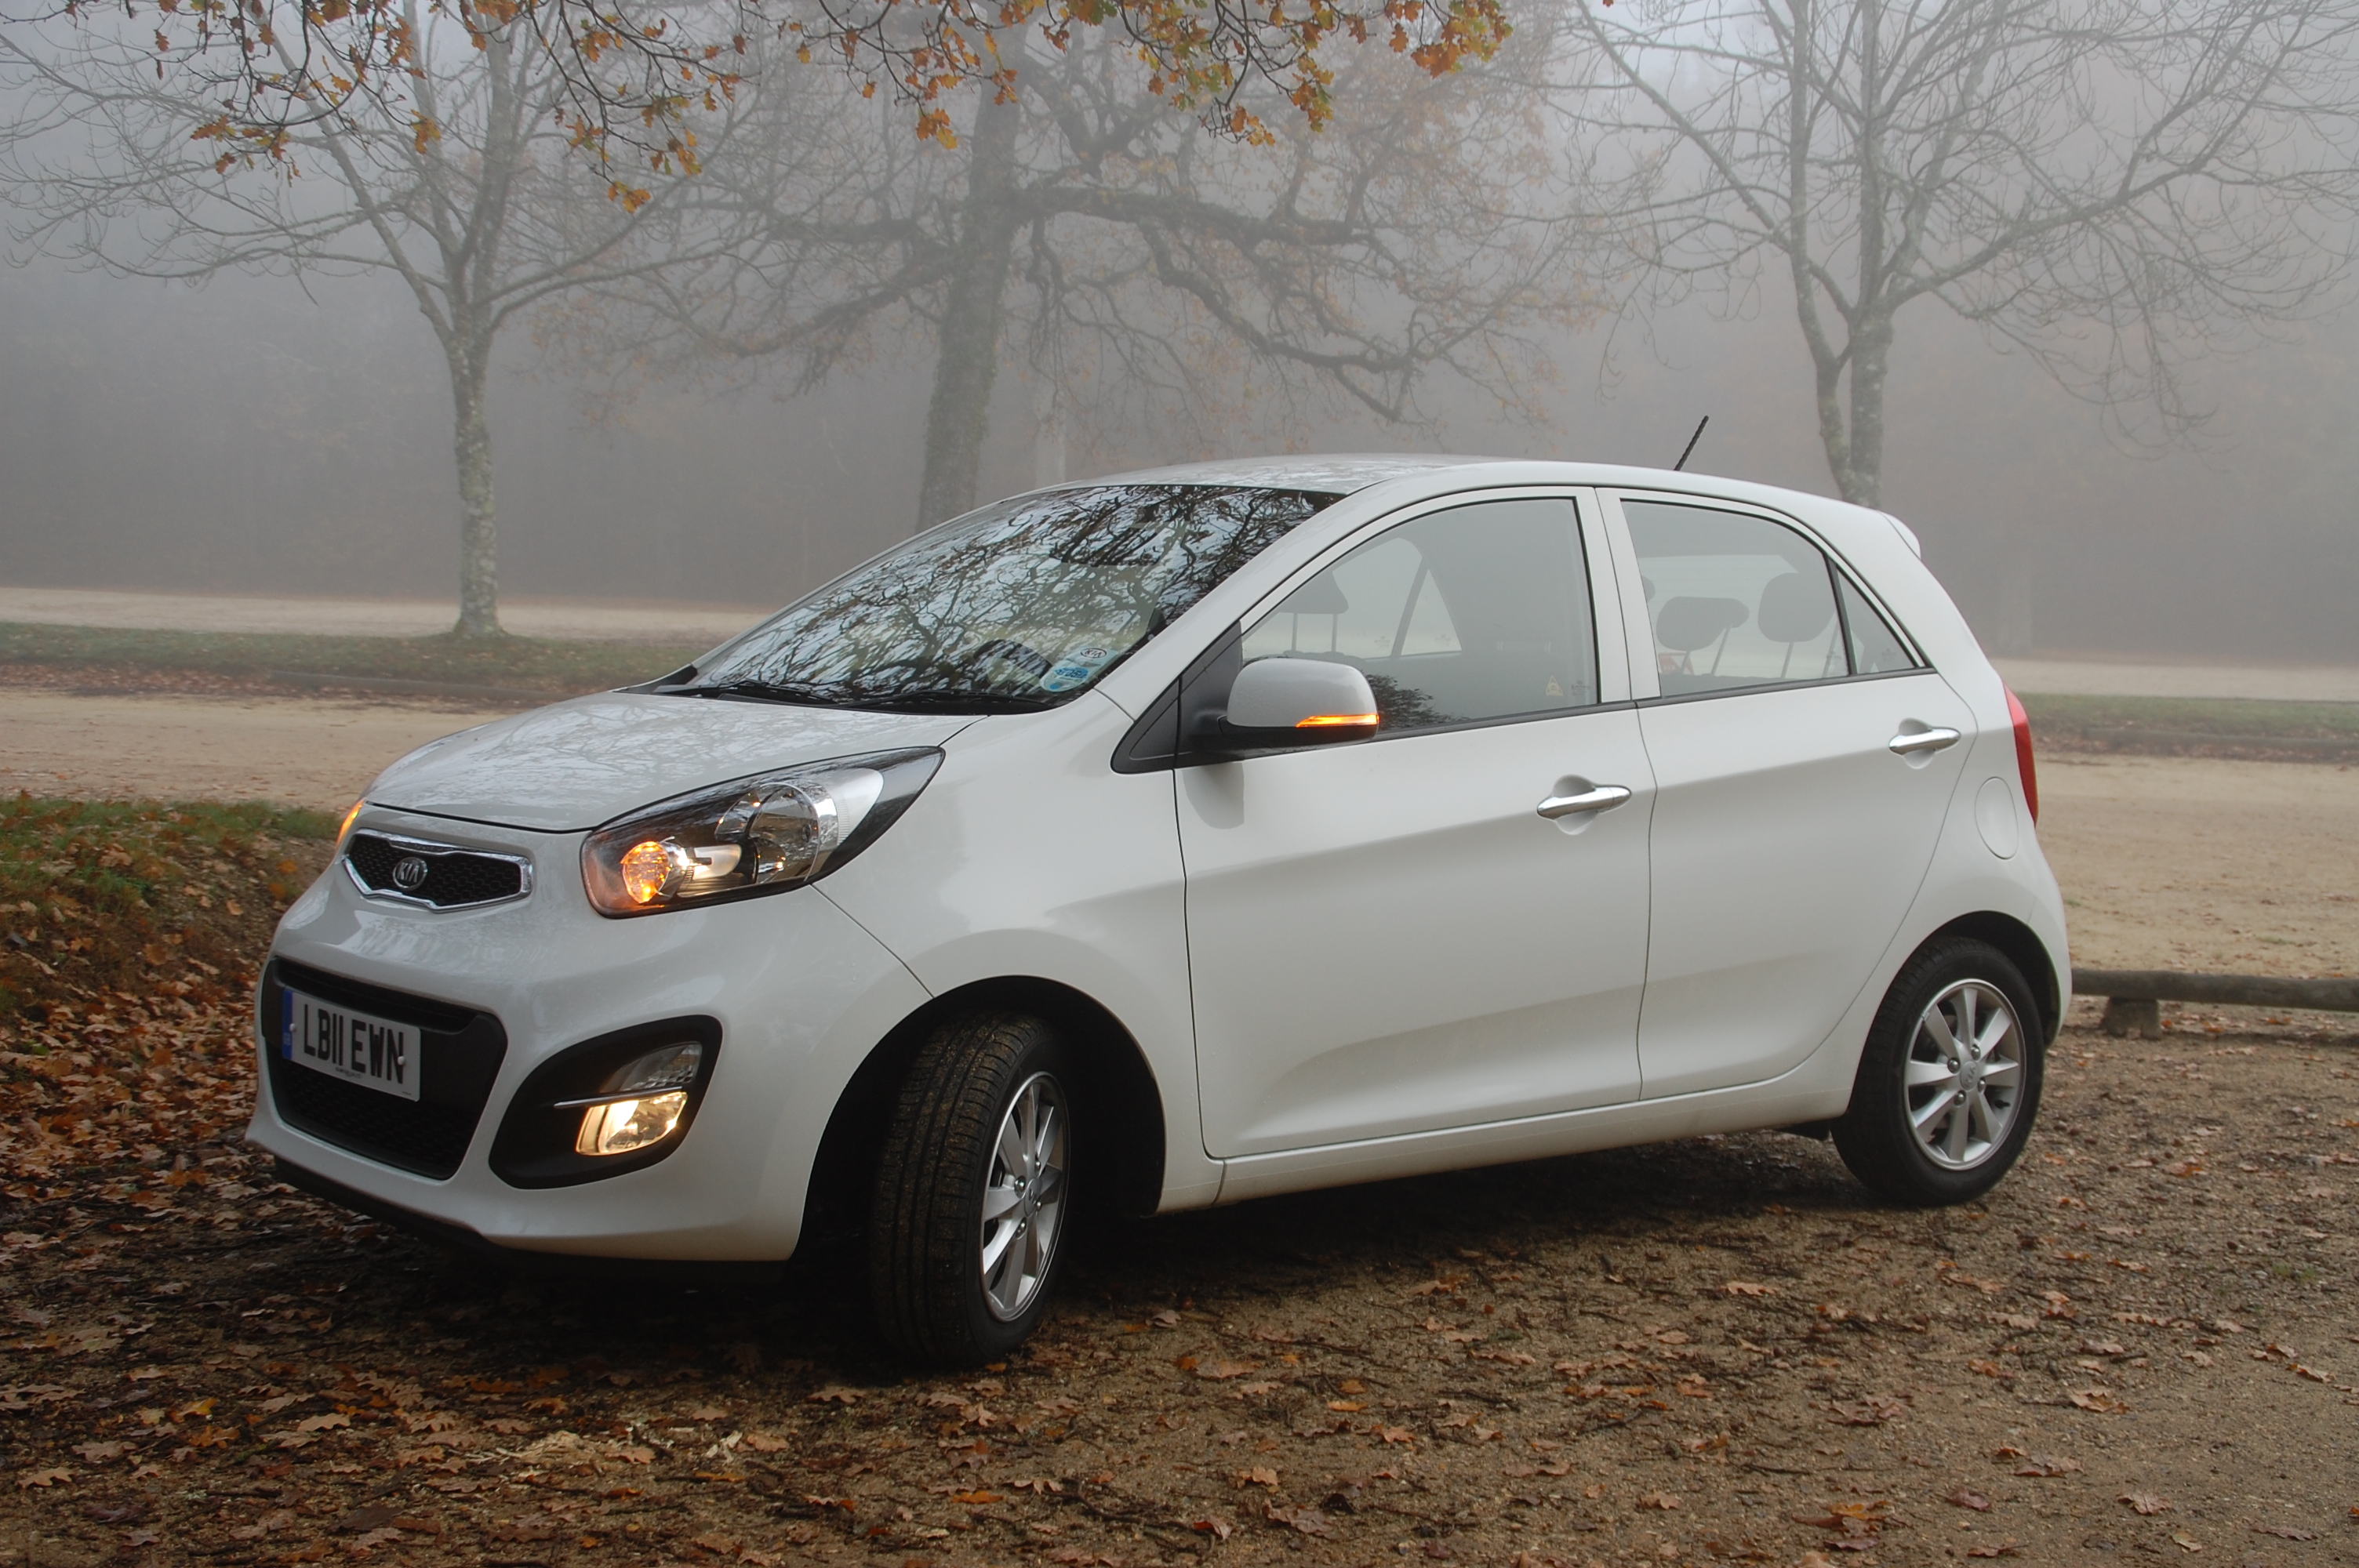 kia picanto 2 ecodynamics isg 5 door road test. Black Bedroom Furniture Sets. Home Design Ideas